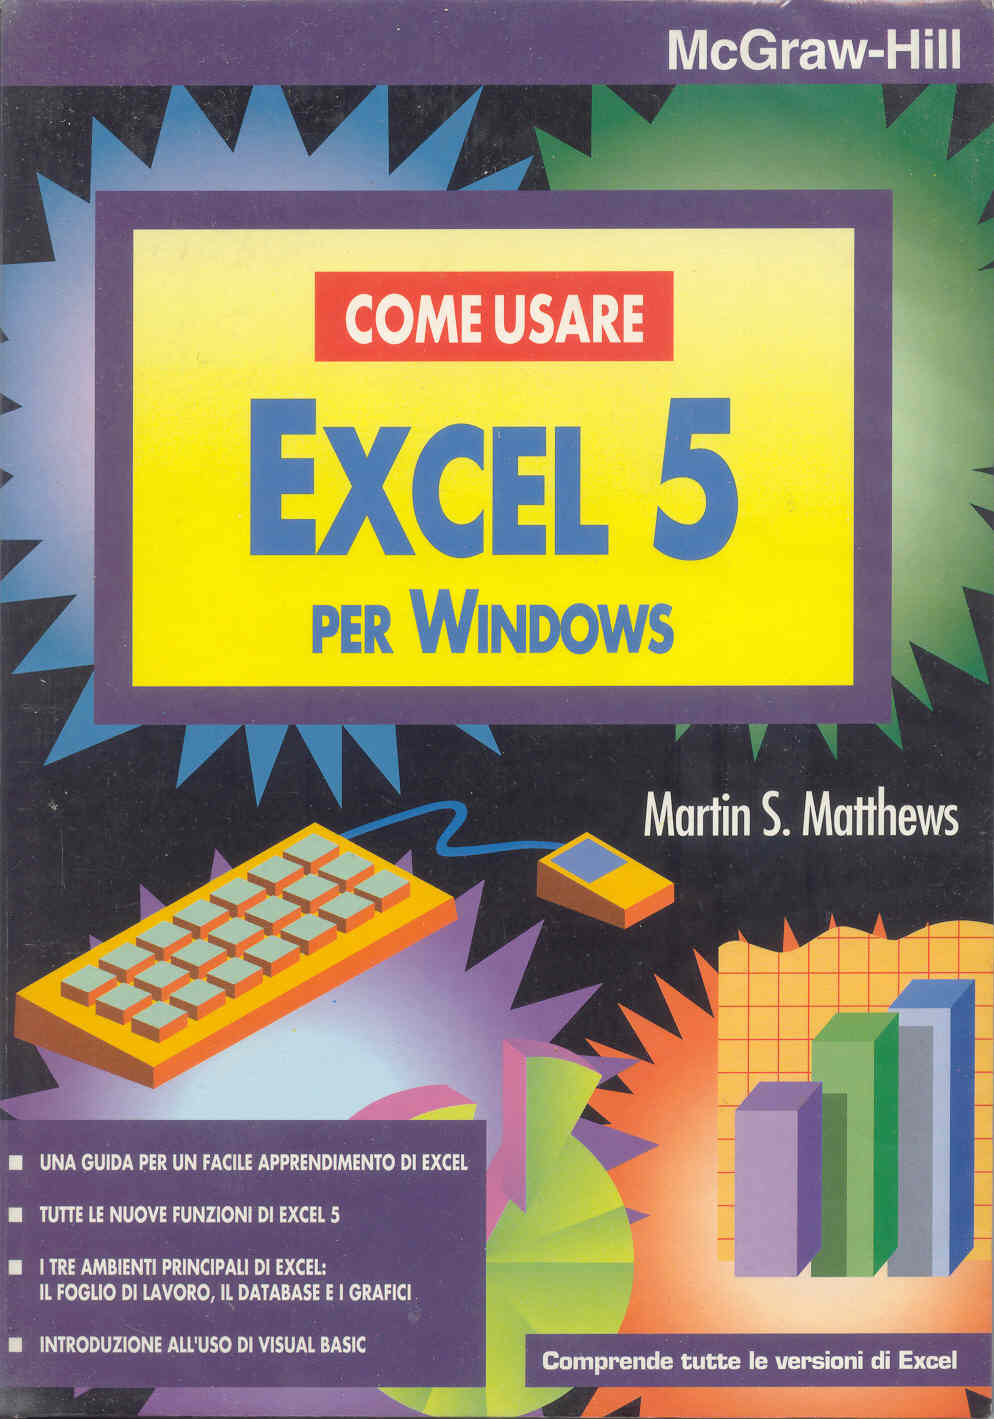 Come usare Excel 5 per Windows